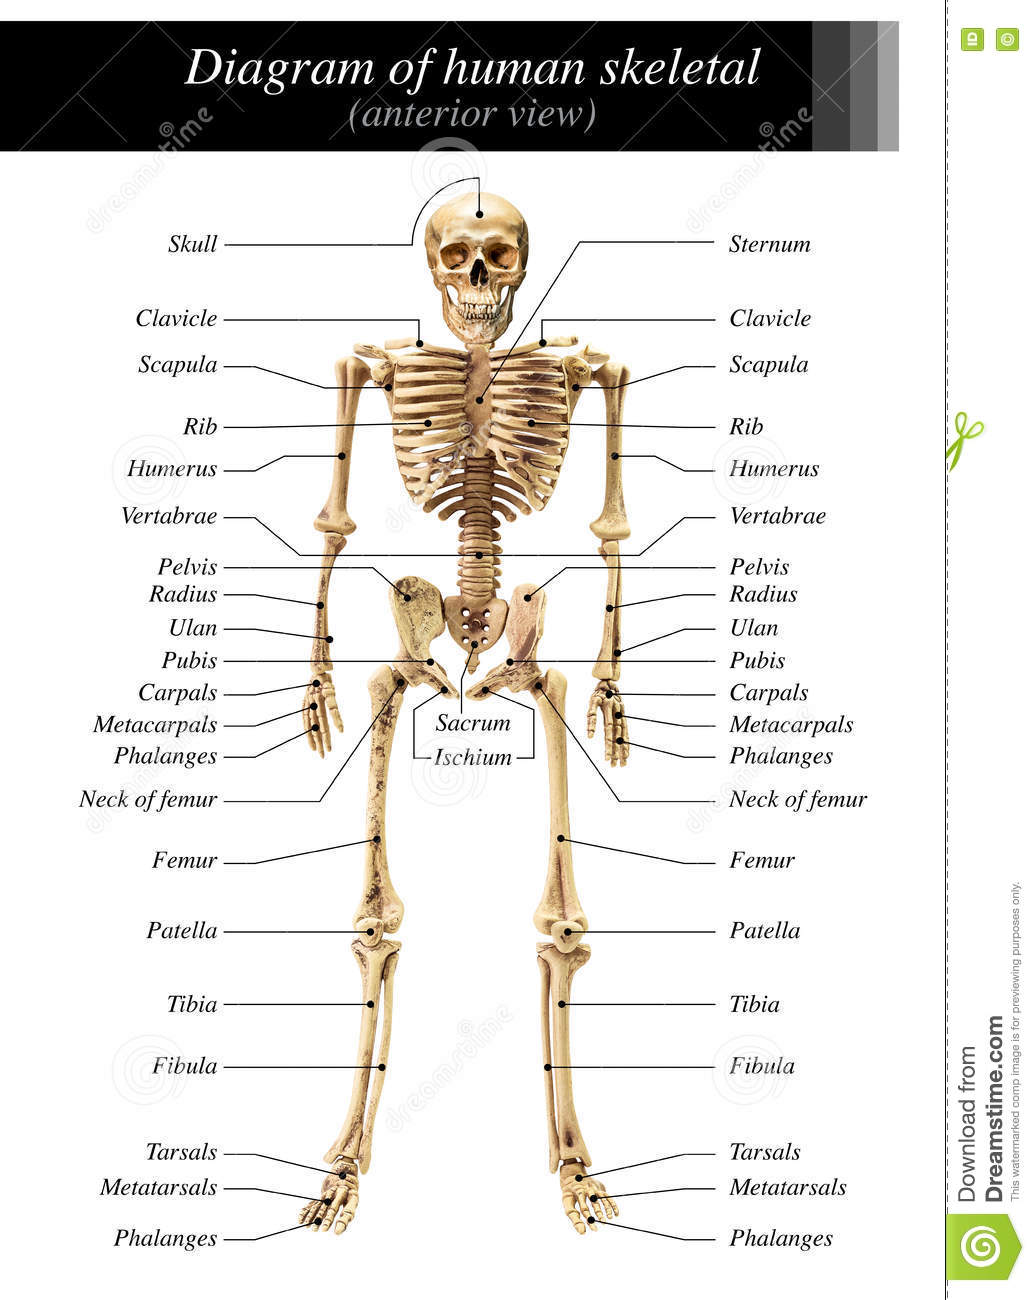 Human skeleton diagram stock image. Image of humerus ...